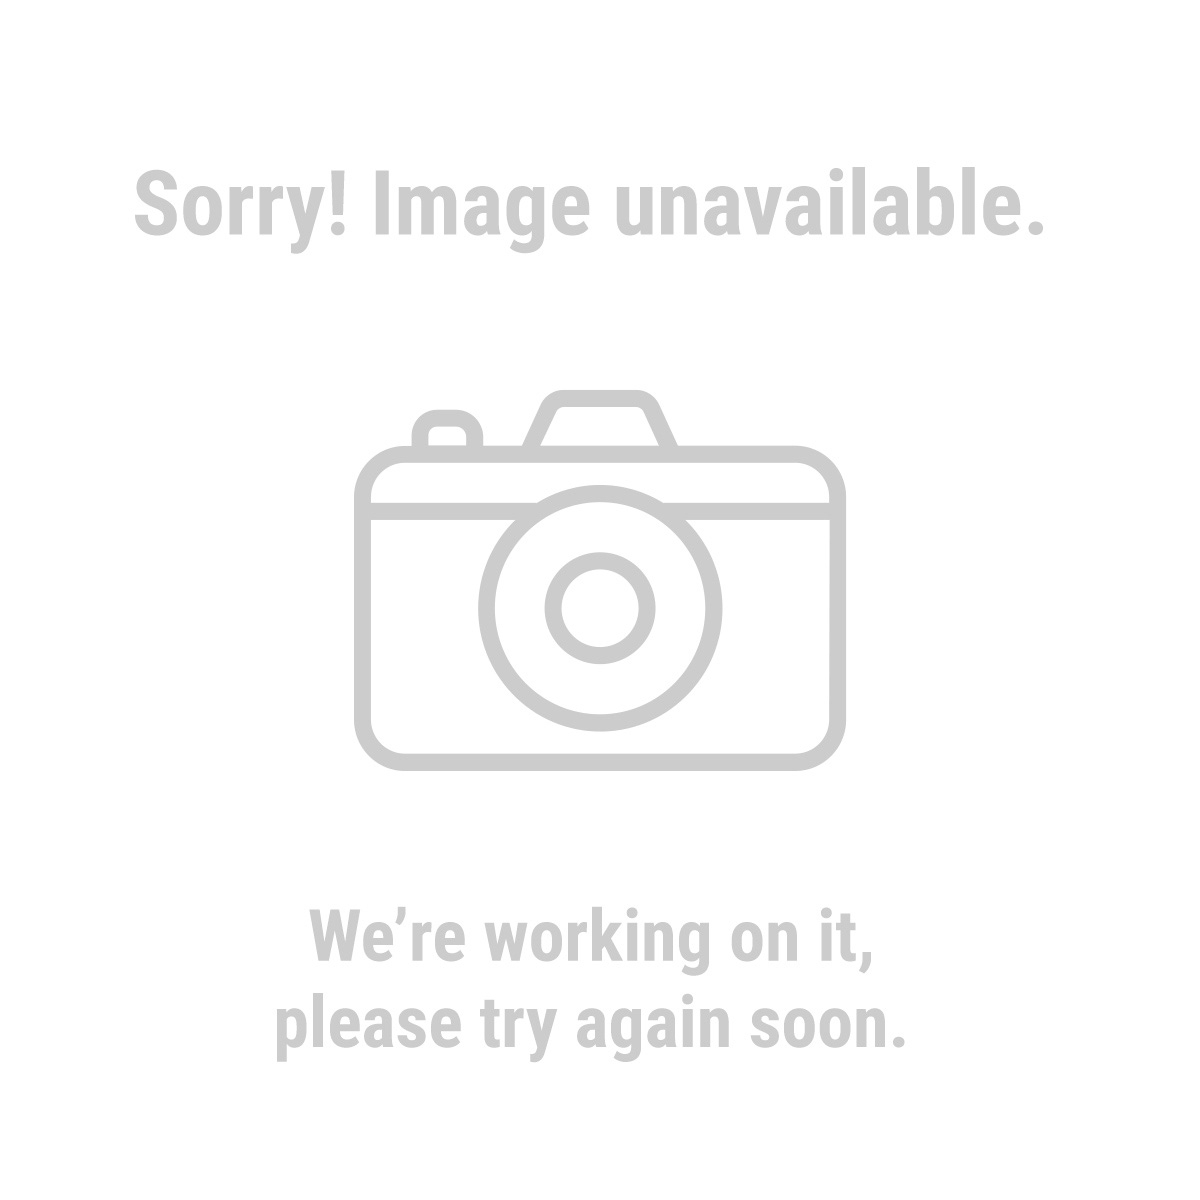 chain fall harbor freight. 3/4 ton lever manual chain hoist fall harbor freight r